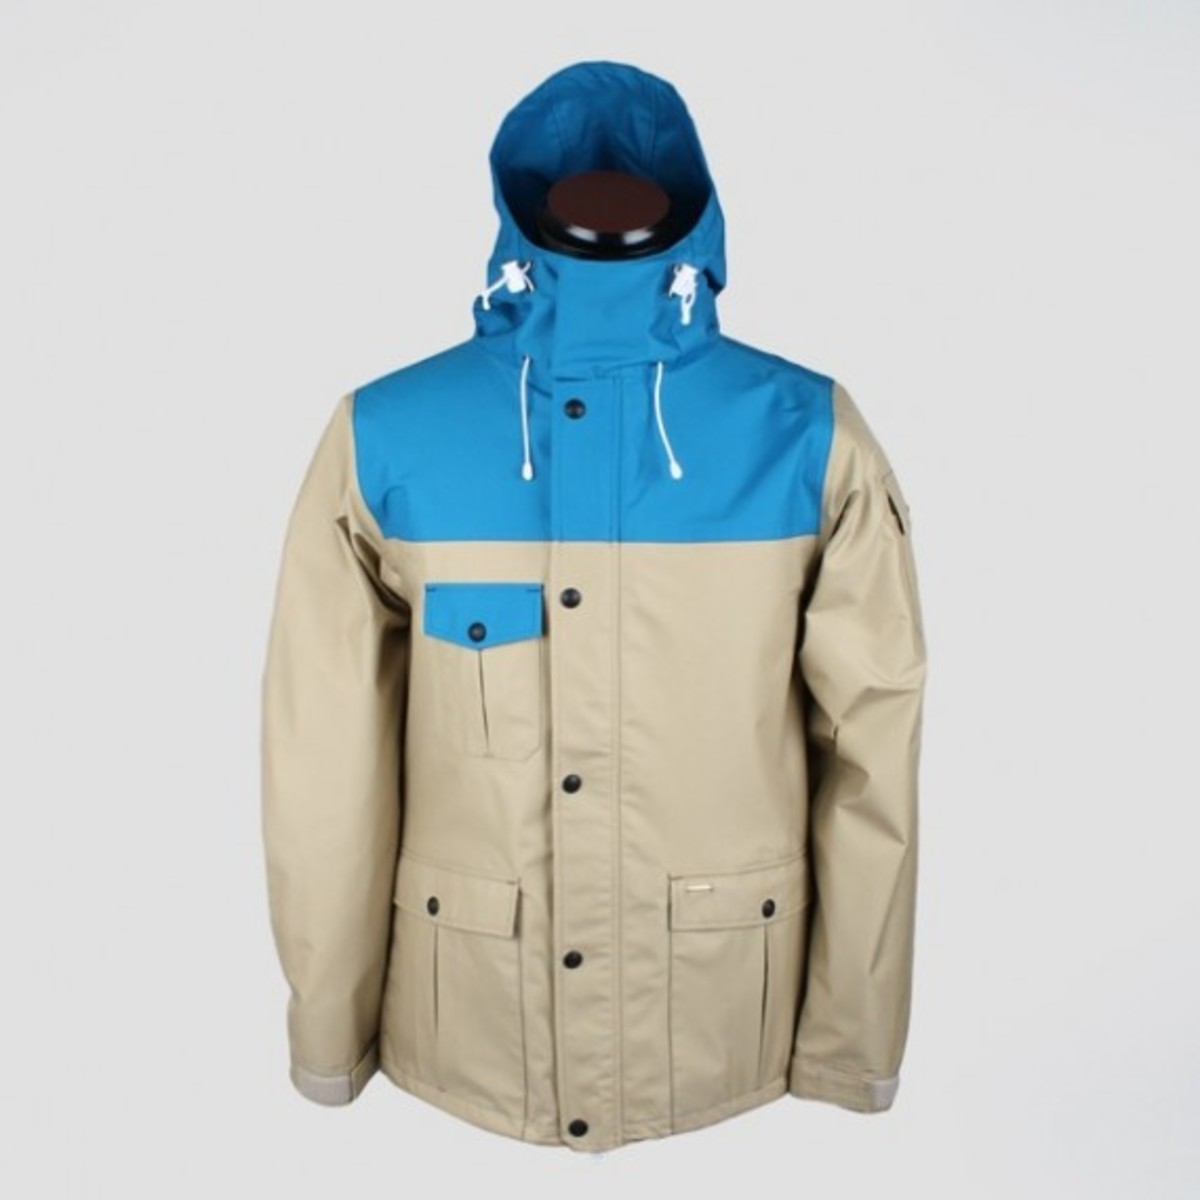 STPL-Gondry-Tech-Jacket-SP11_1